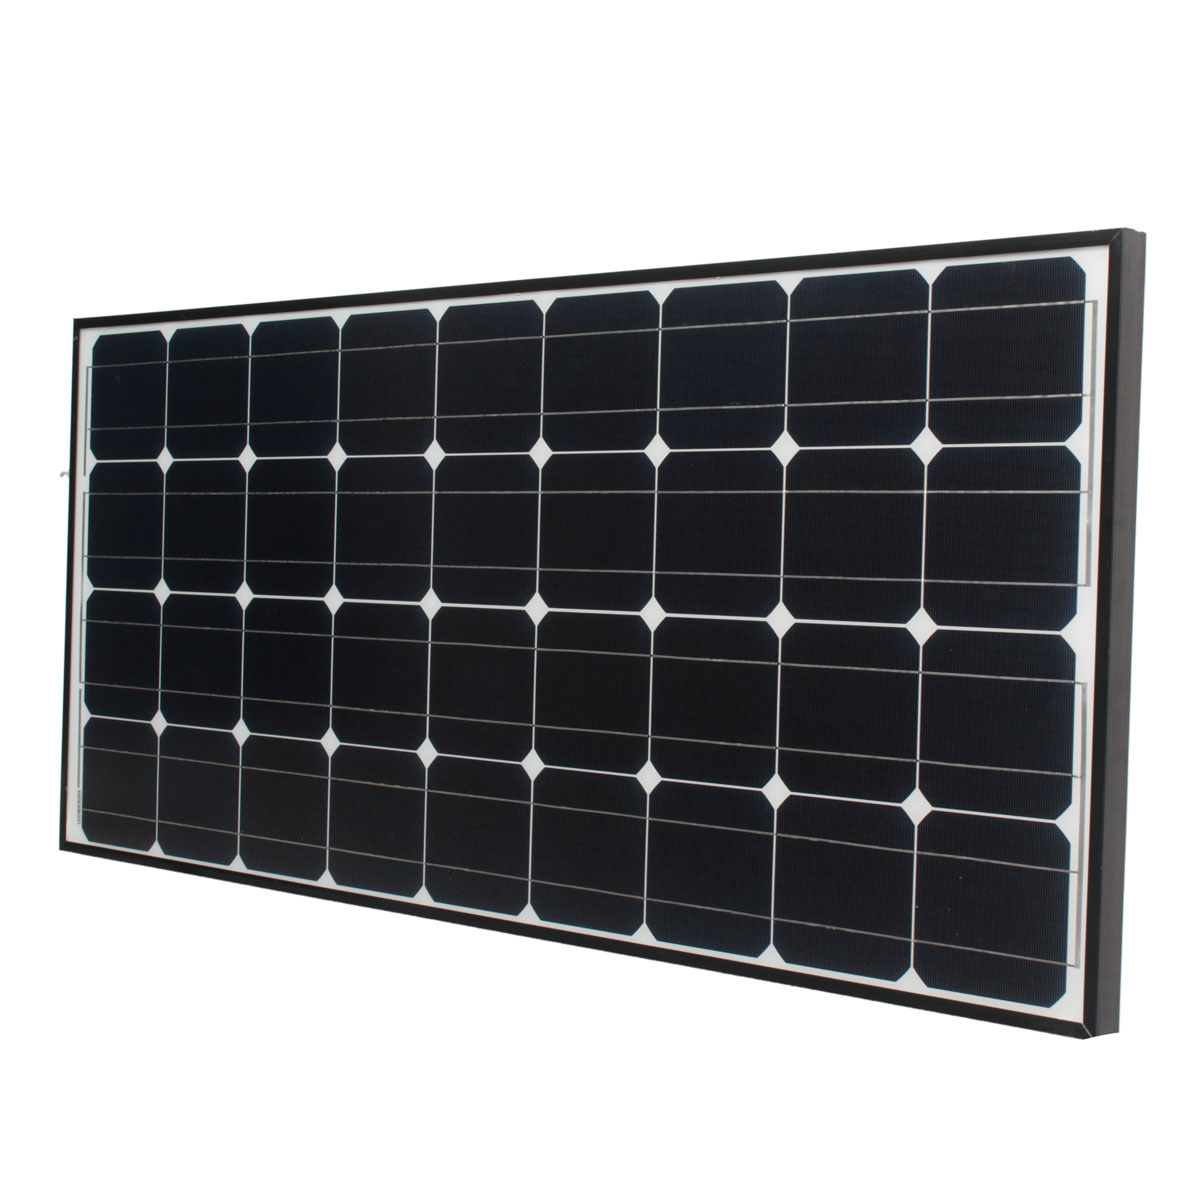 KINCO 15W 18V High Conversion Efficiency DIY Solar Panel Waterproof Polycrystalline Silicon Solar System For Car Battery sp 36 120w 12v semi flexible monocrystalline solar panel waterproof high conversion efficiency for rv boat car 1 5m cable